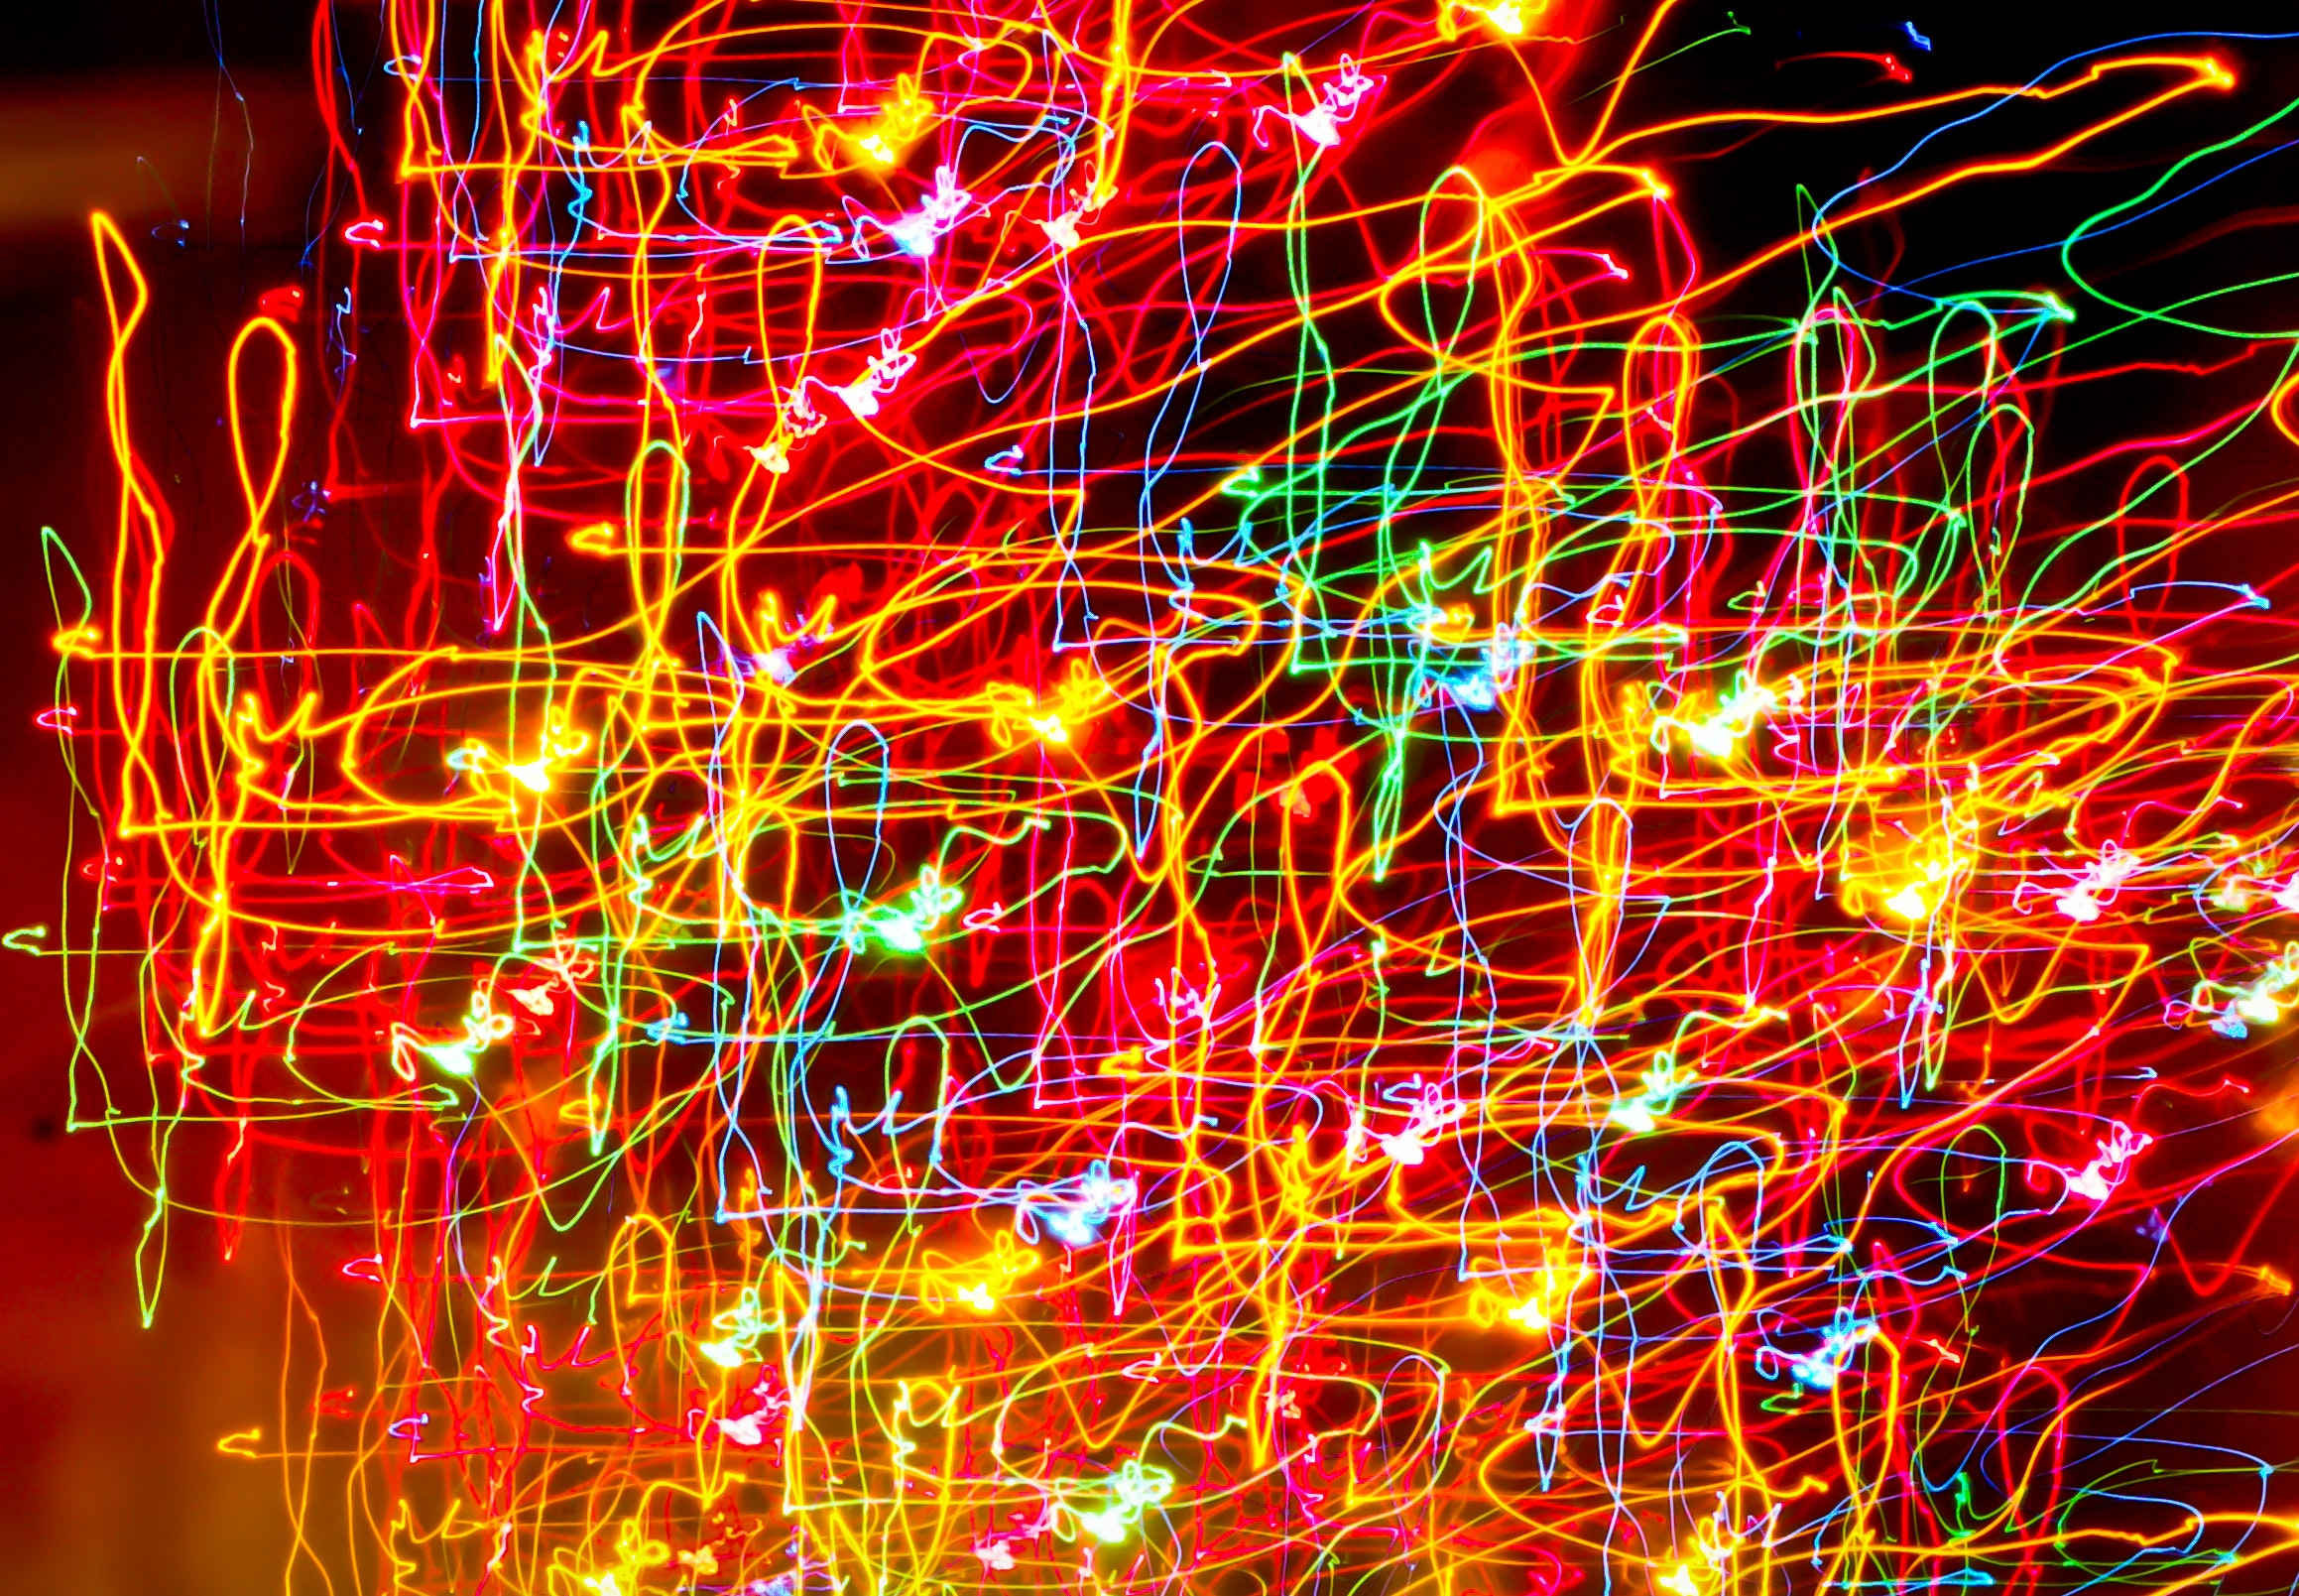 Photograph of abstract art made by dozens of lines of neon light